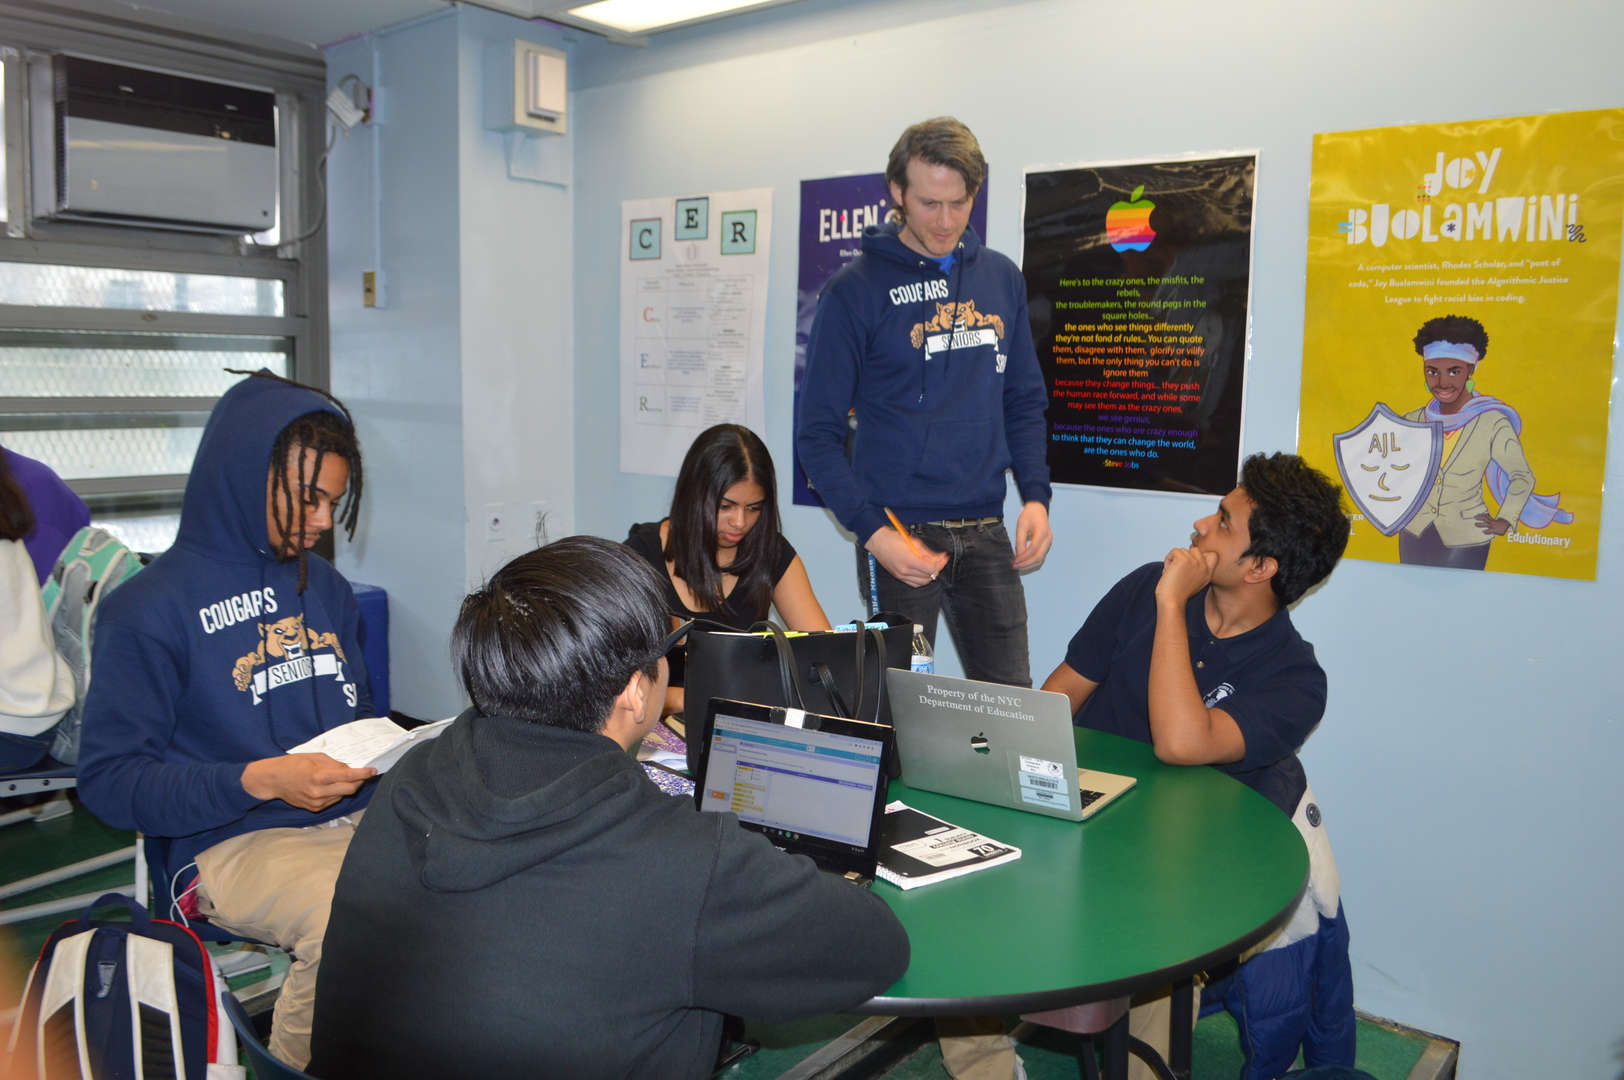 Students work in groups on their laptops